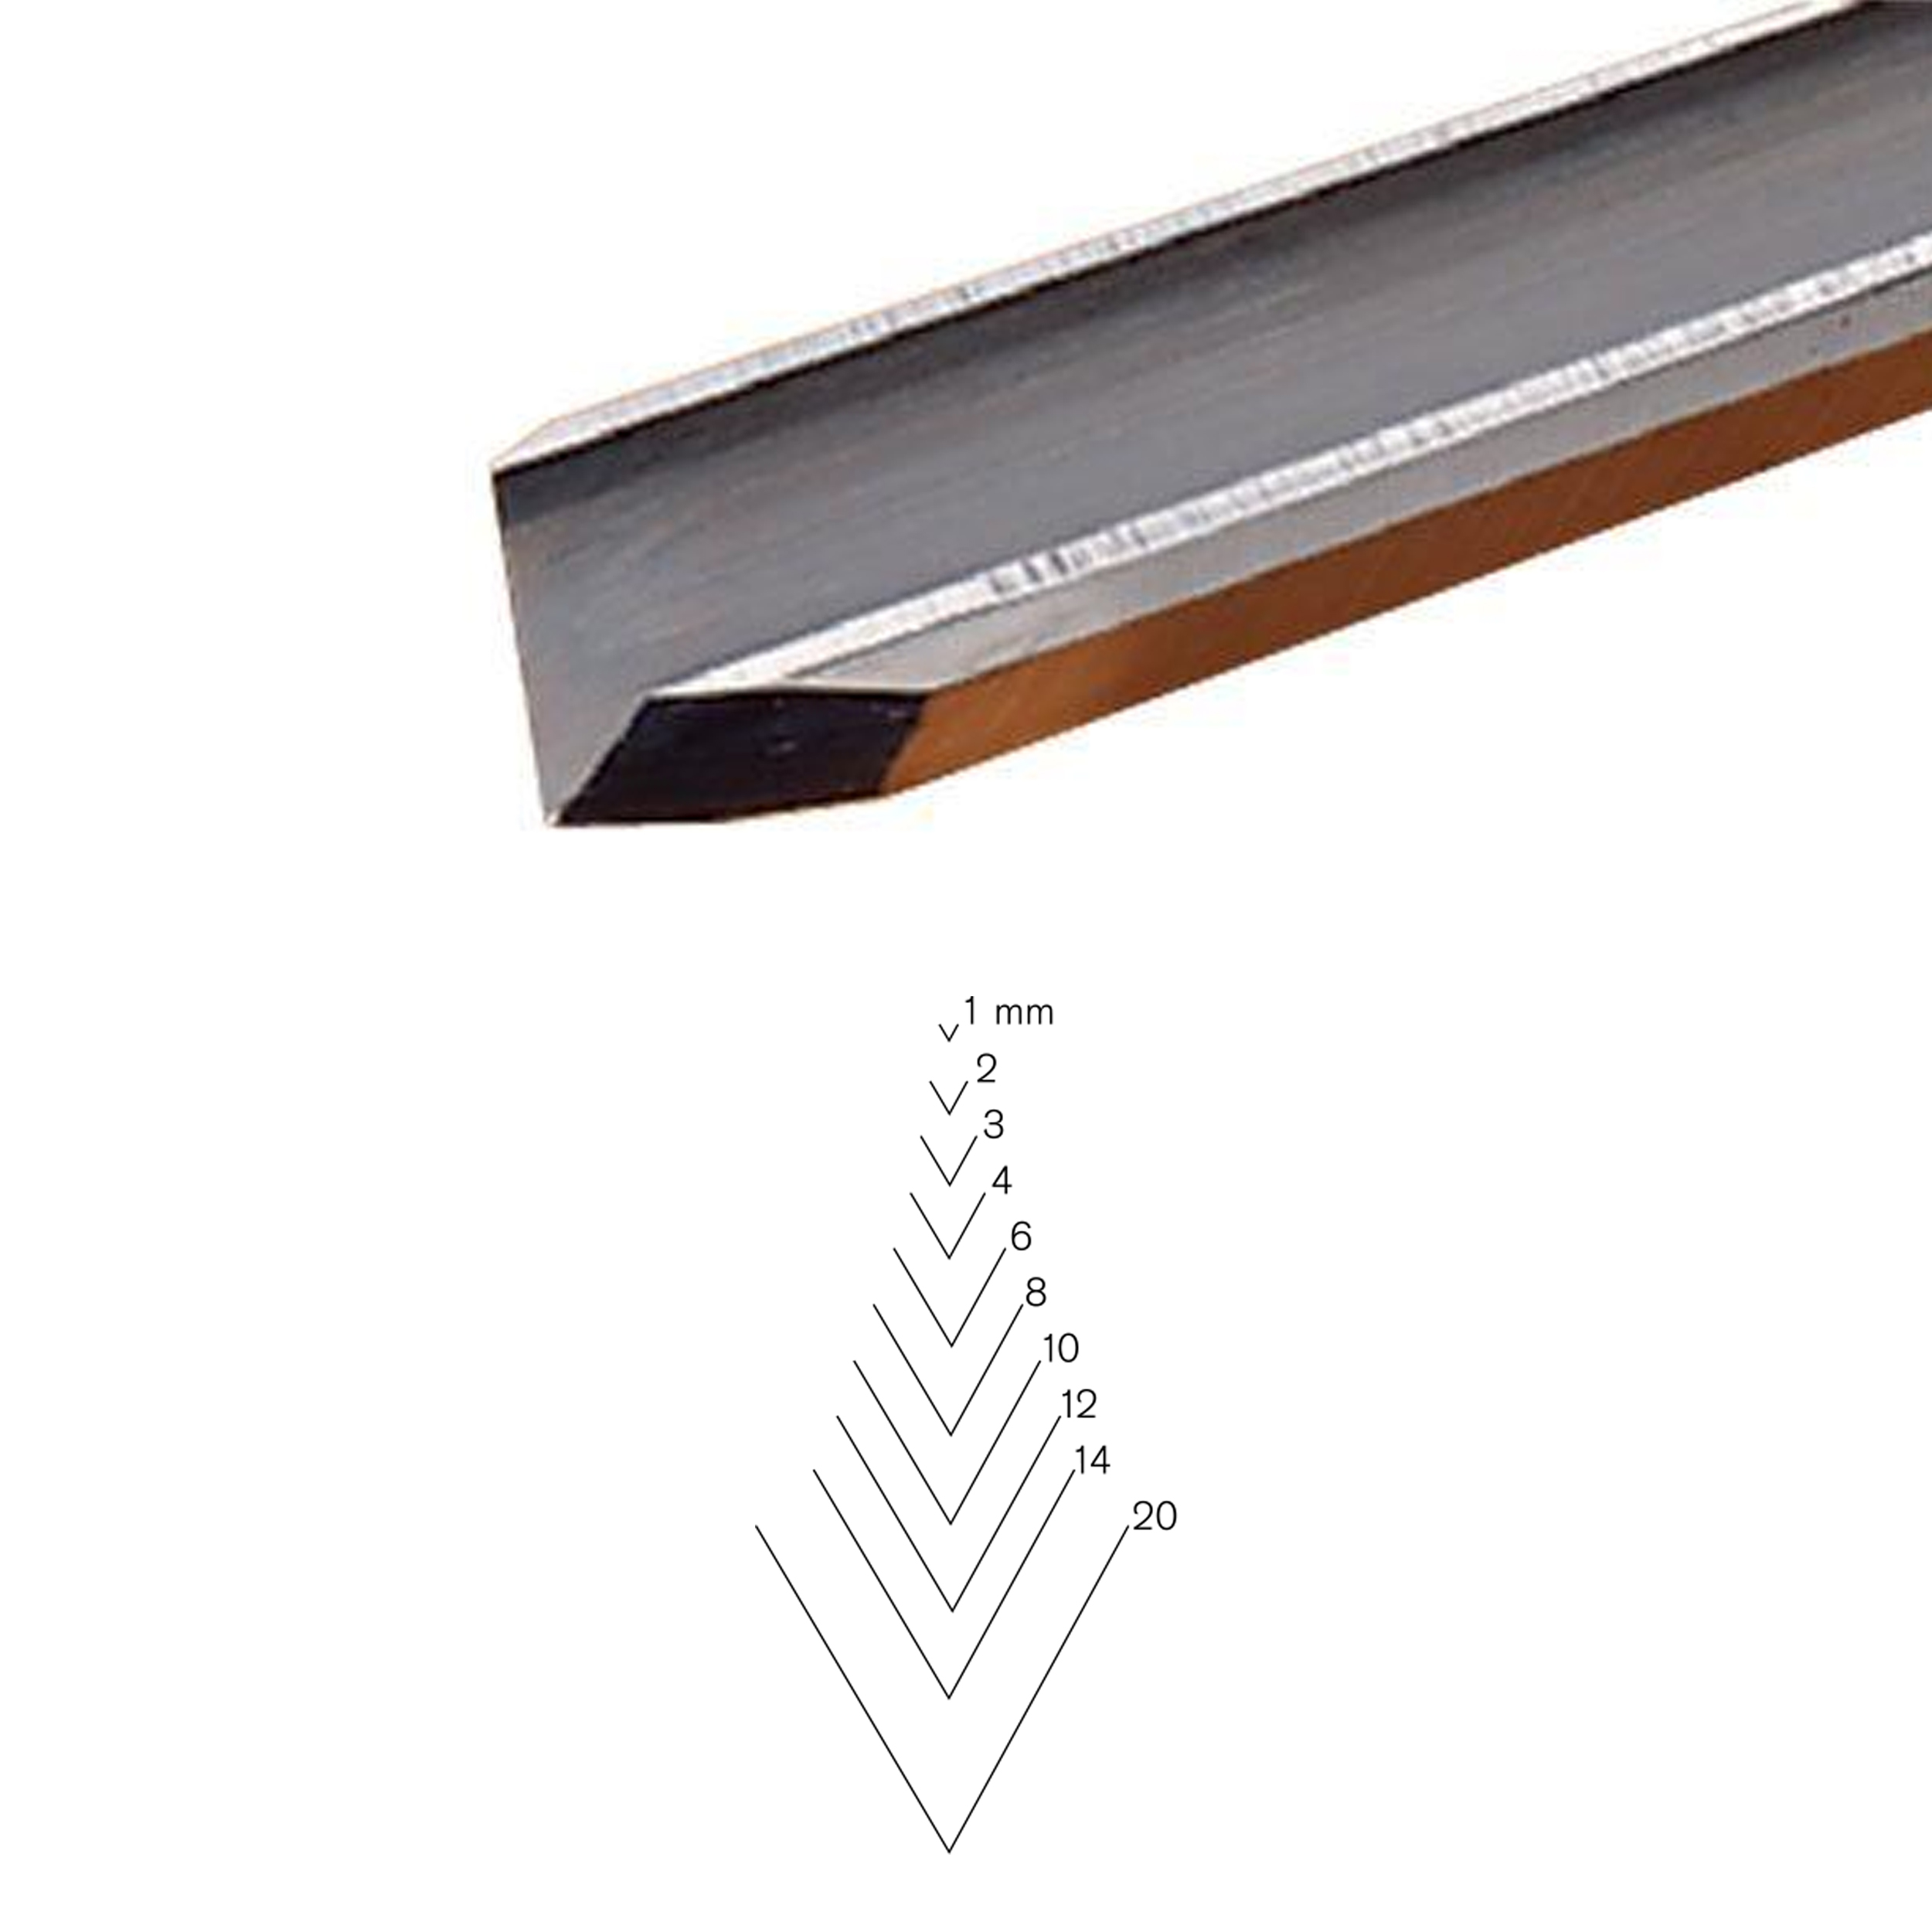 #12 Sweep V-Parting Tool, 14 mm, Full Size